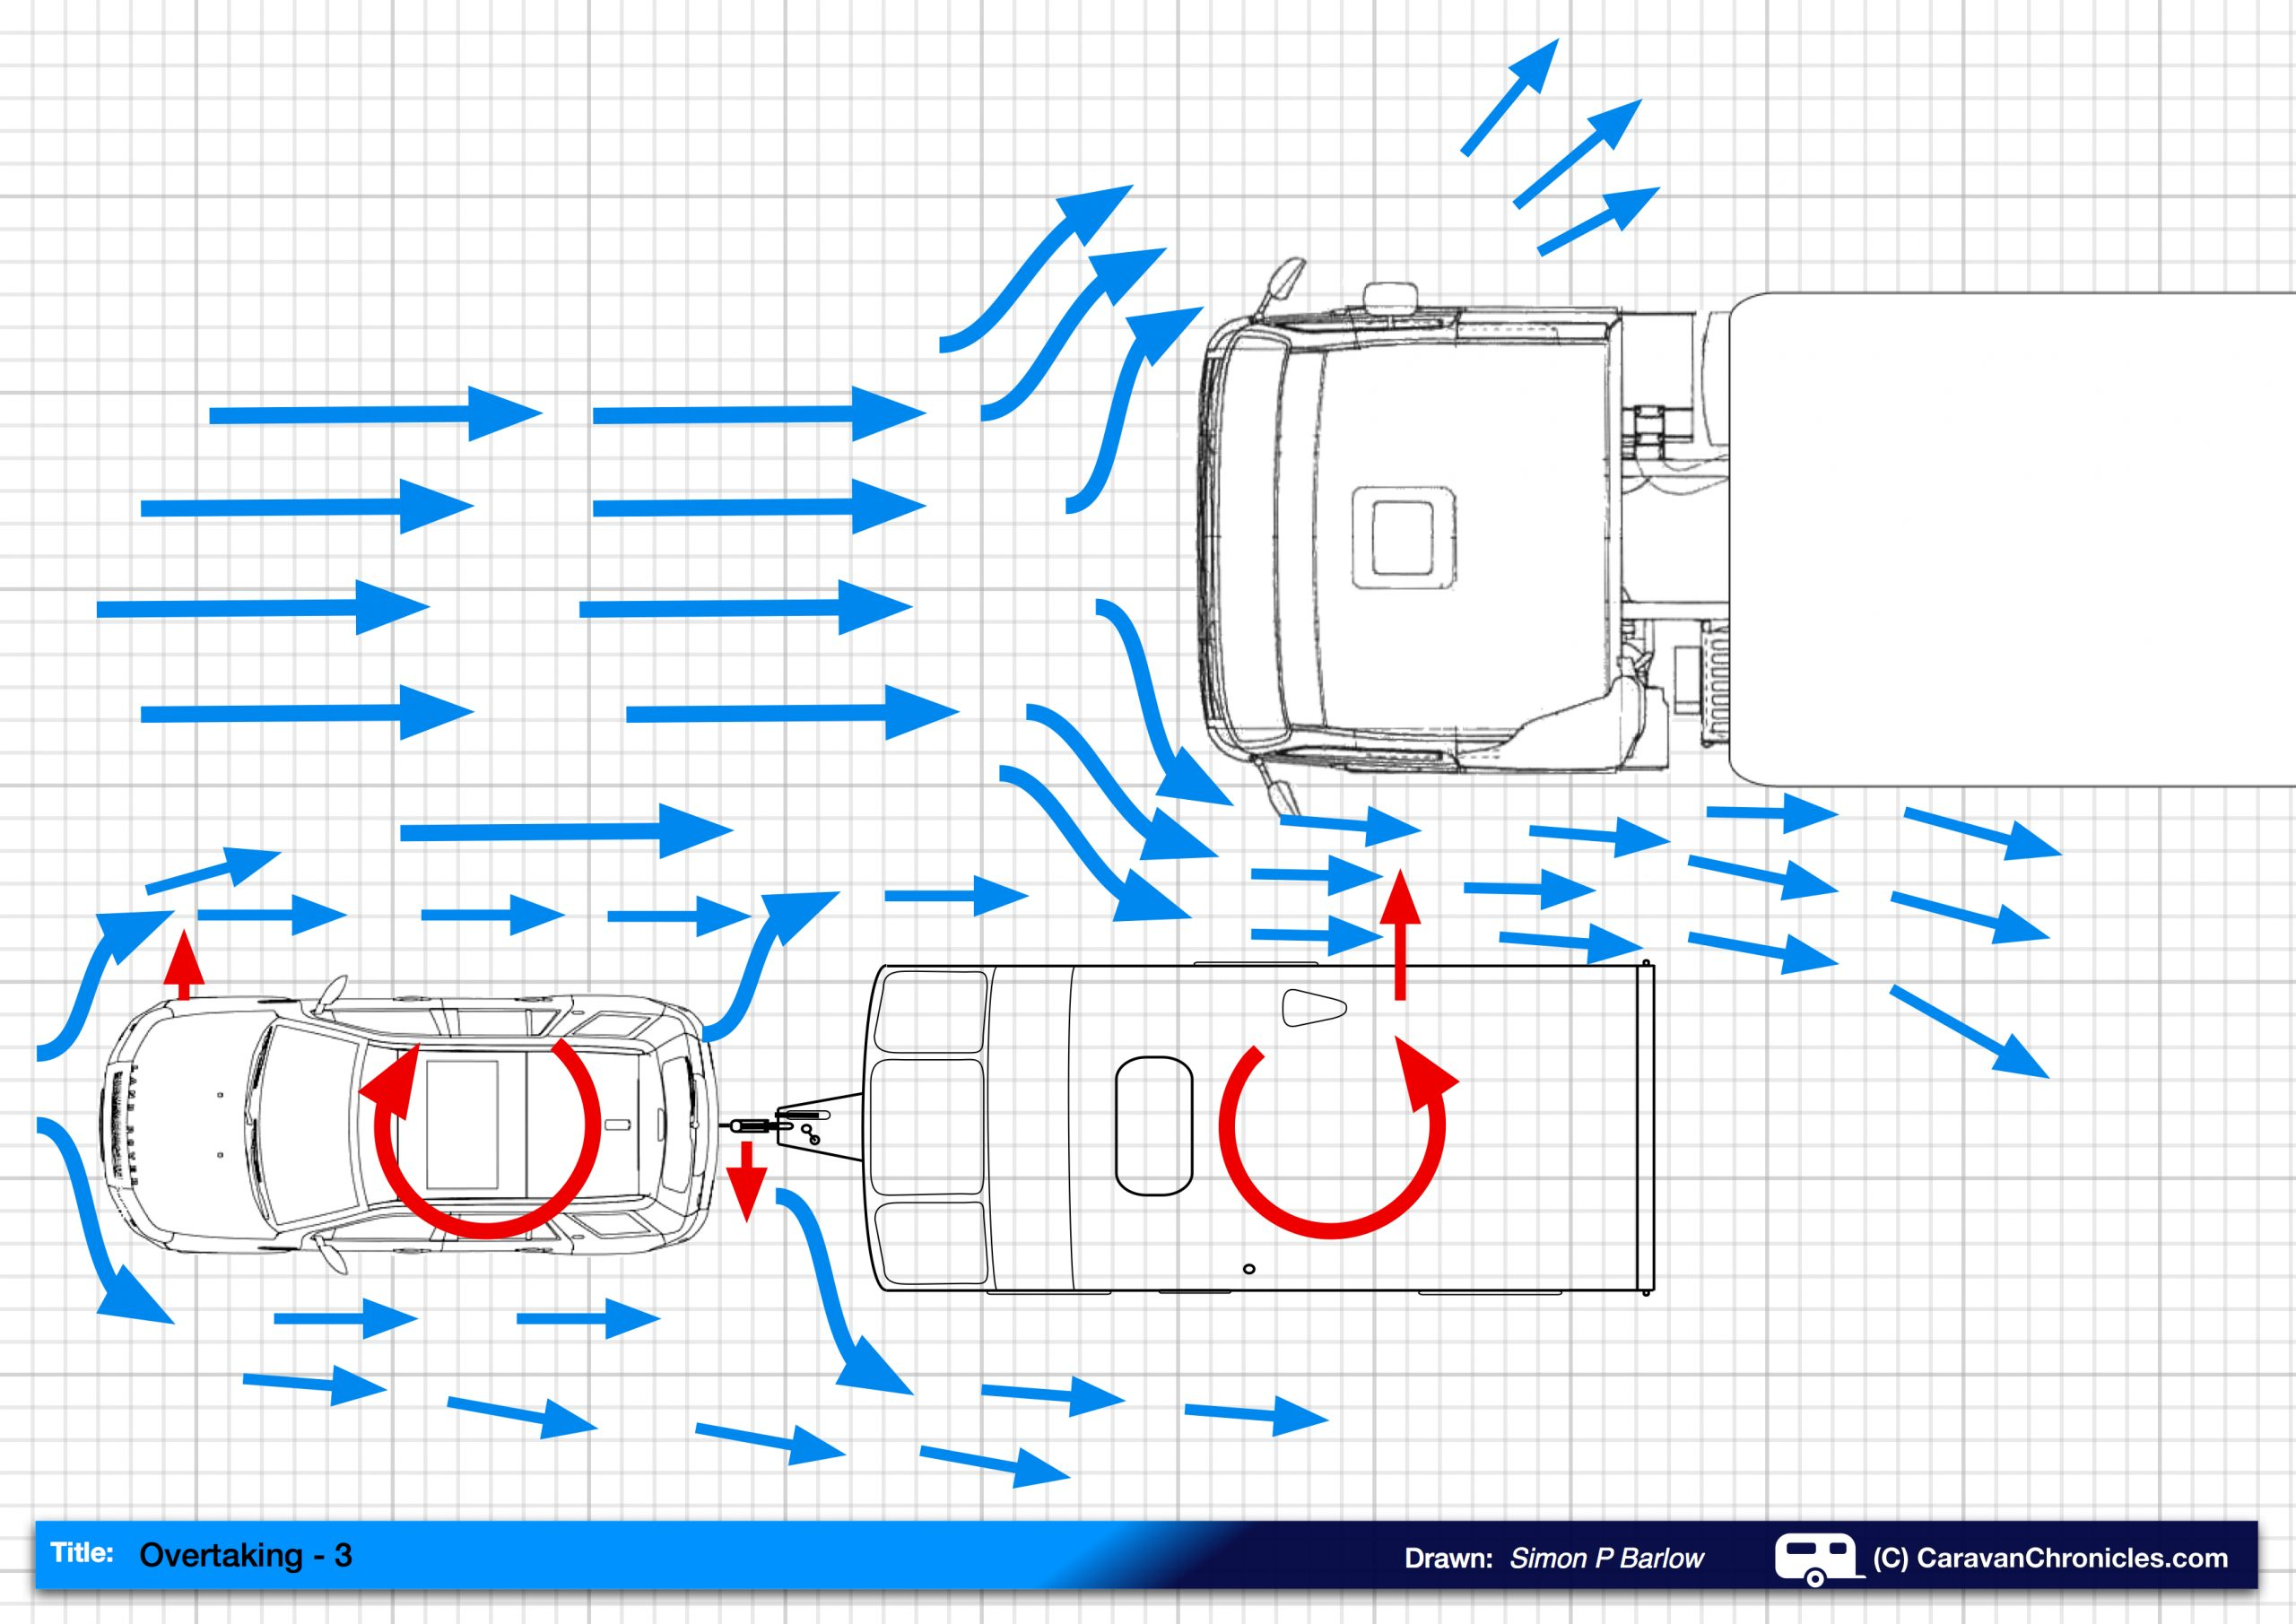 Dynamics Of Towing Overtaking 3